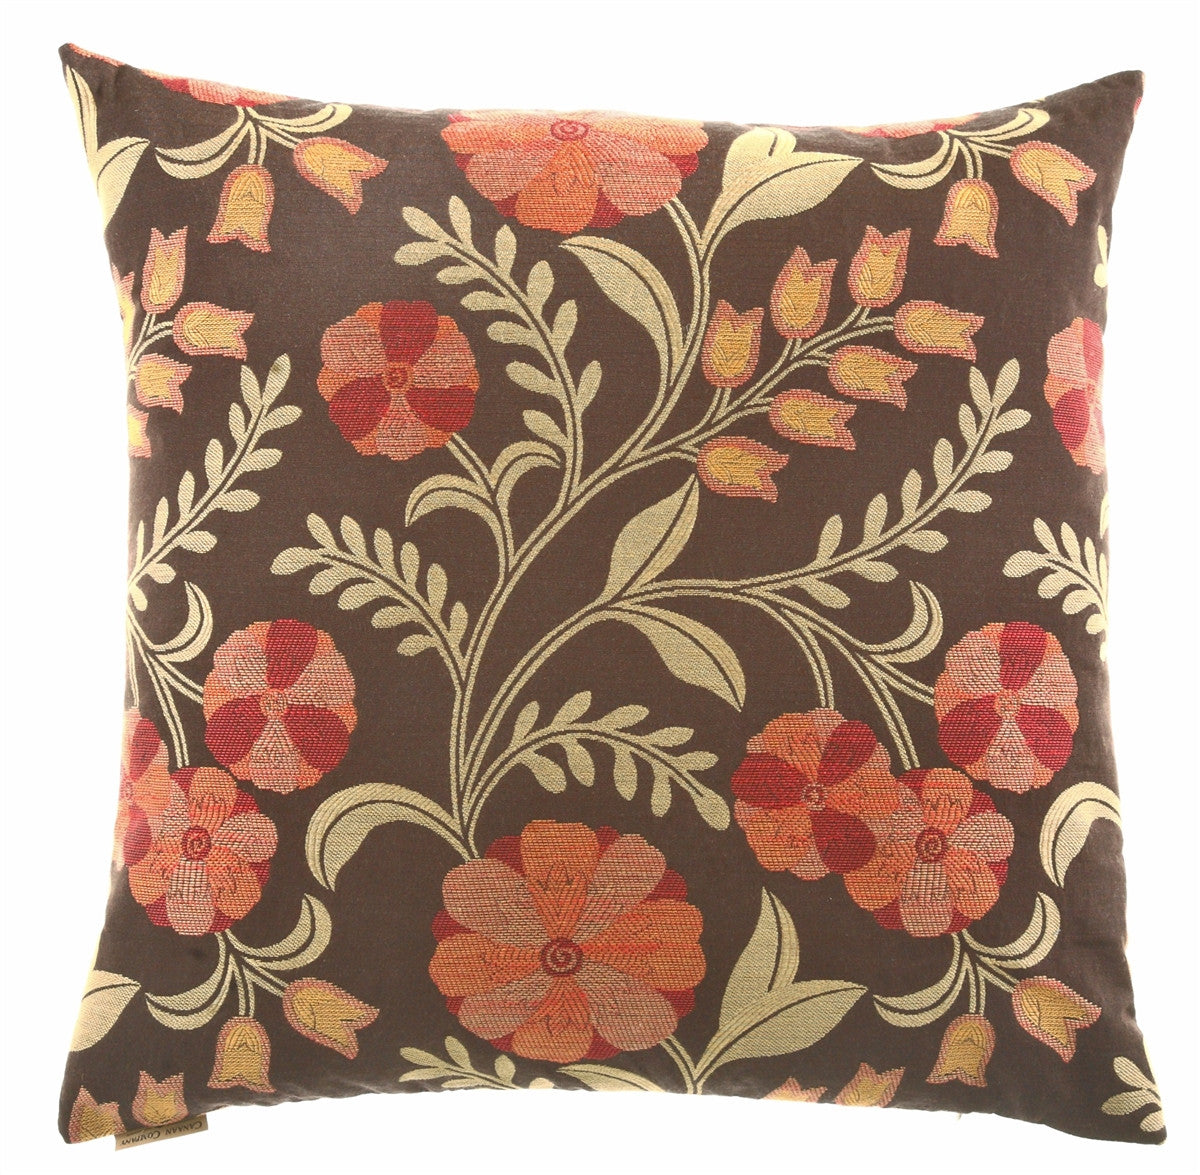 DV Kap Home - Cottage Inn Toss Pillow